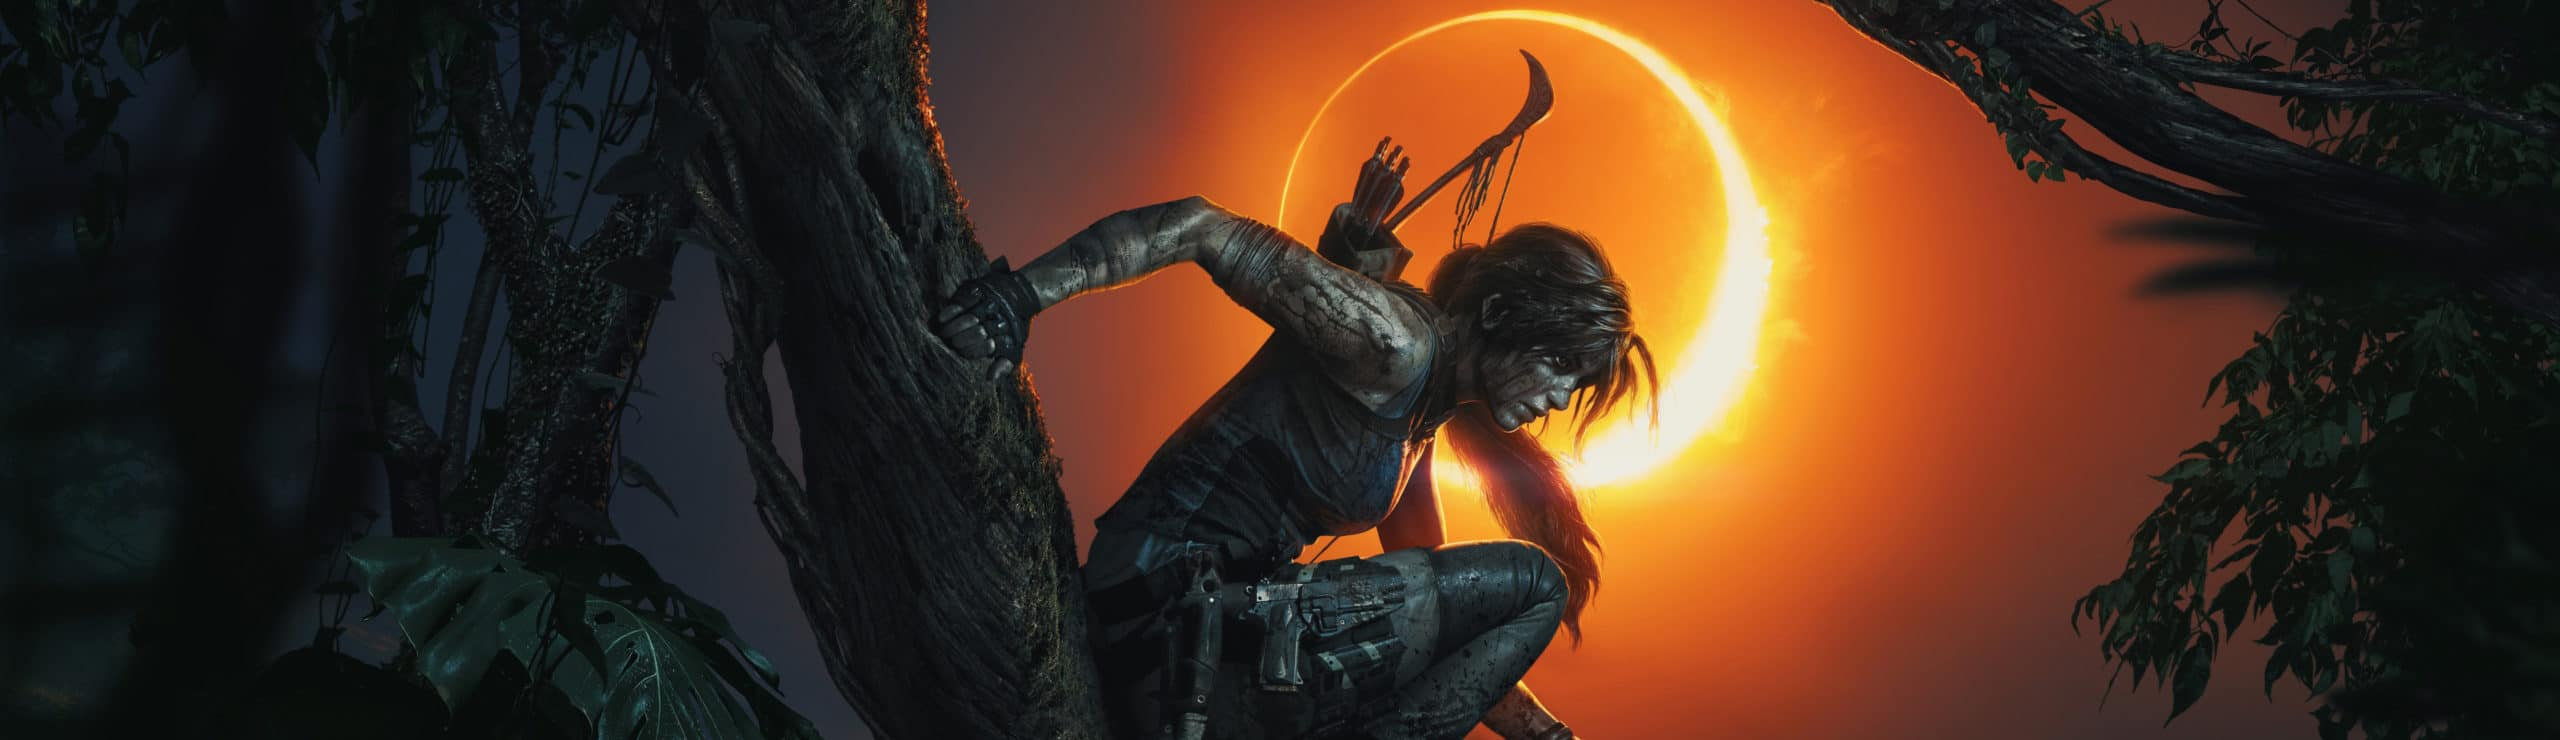 EIDOS MONTRÉAL'S SHADOW OF THE TOMB RAIDER LAUNCHED THIS MONTH VIRTUOS TEAM MAKES MAJOR CO-DEVELOPMENT CONTRIBUTION